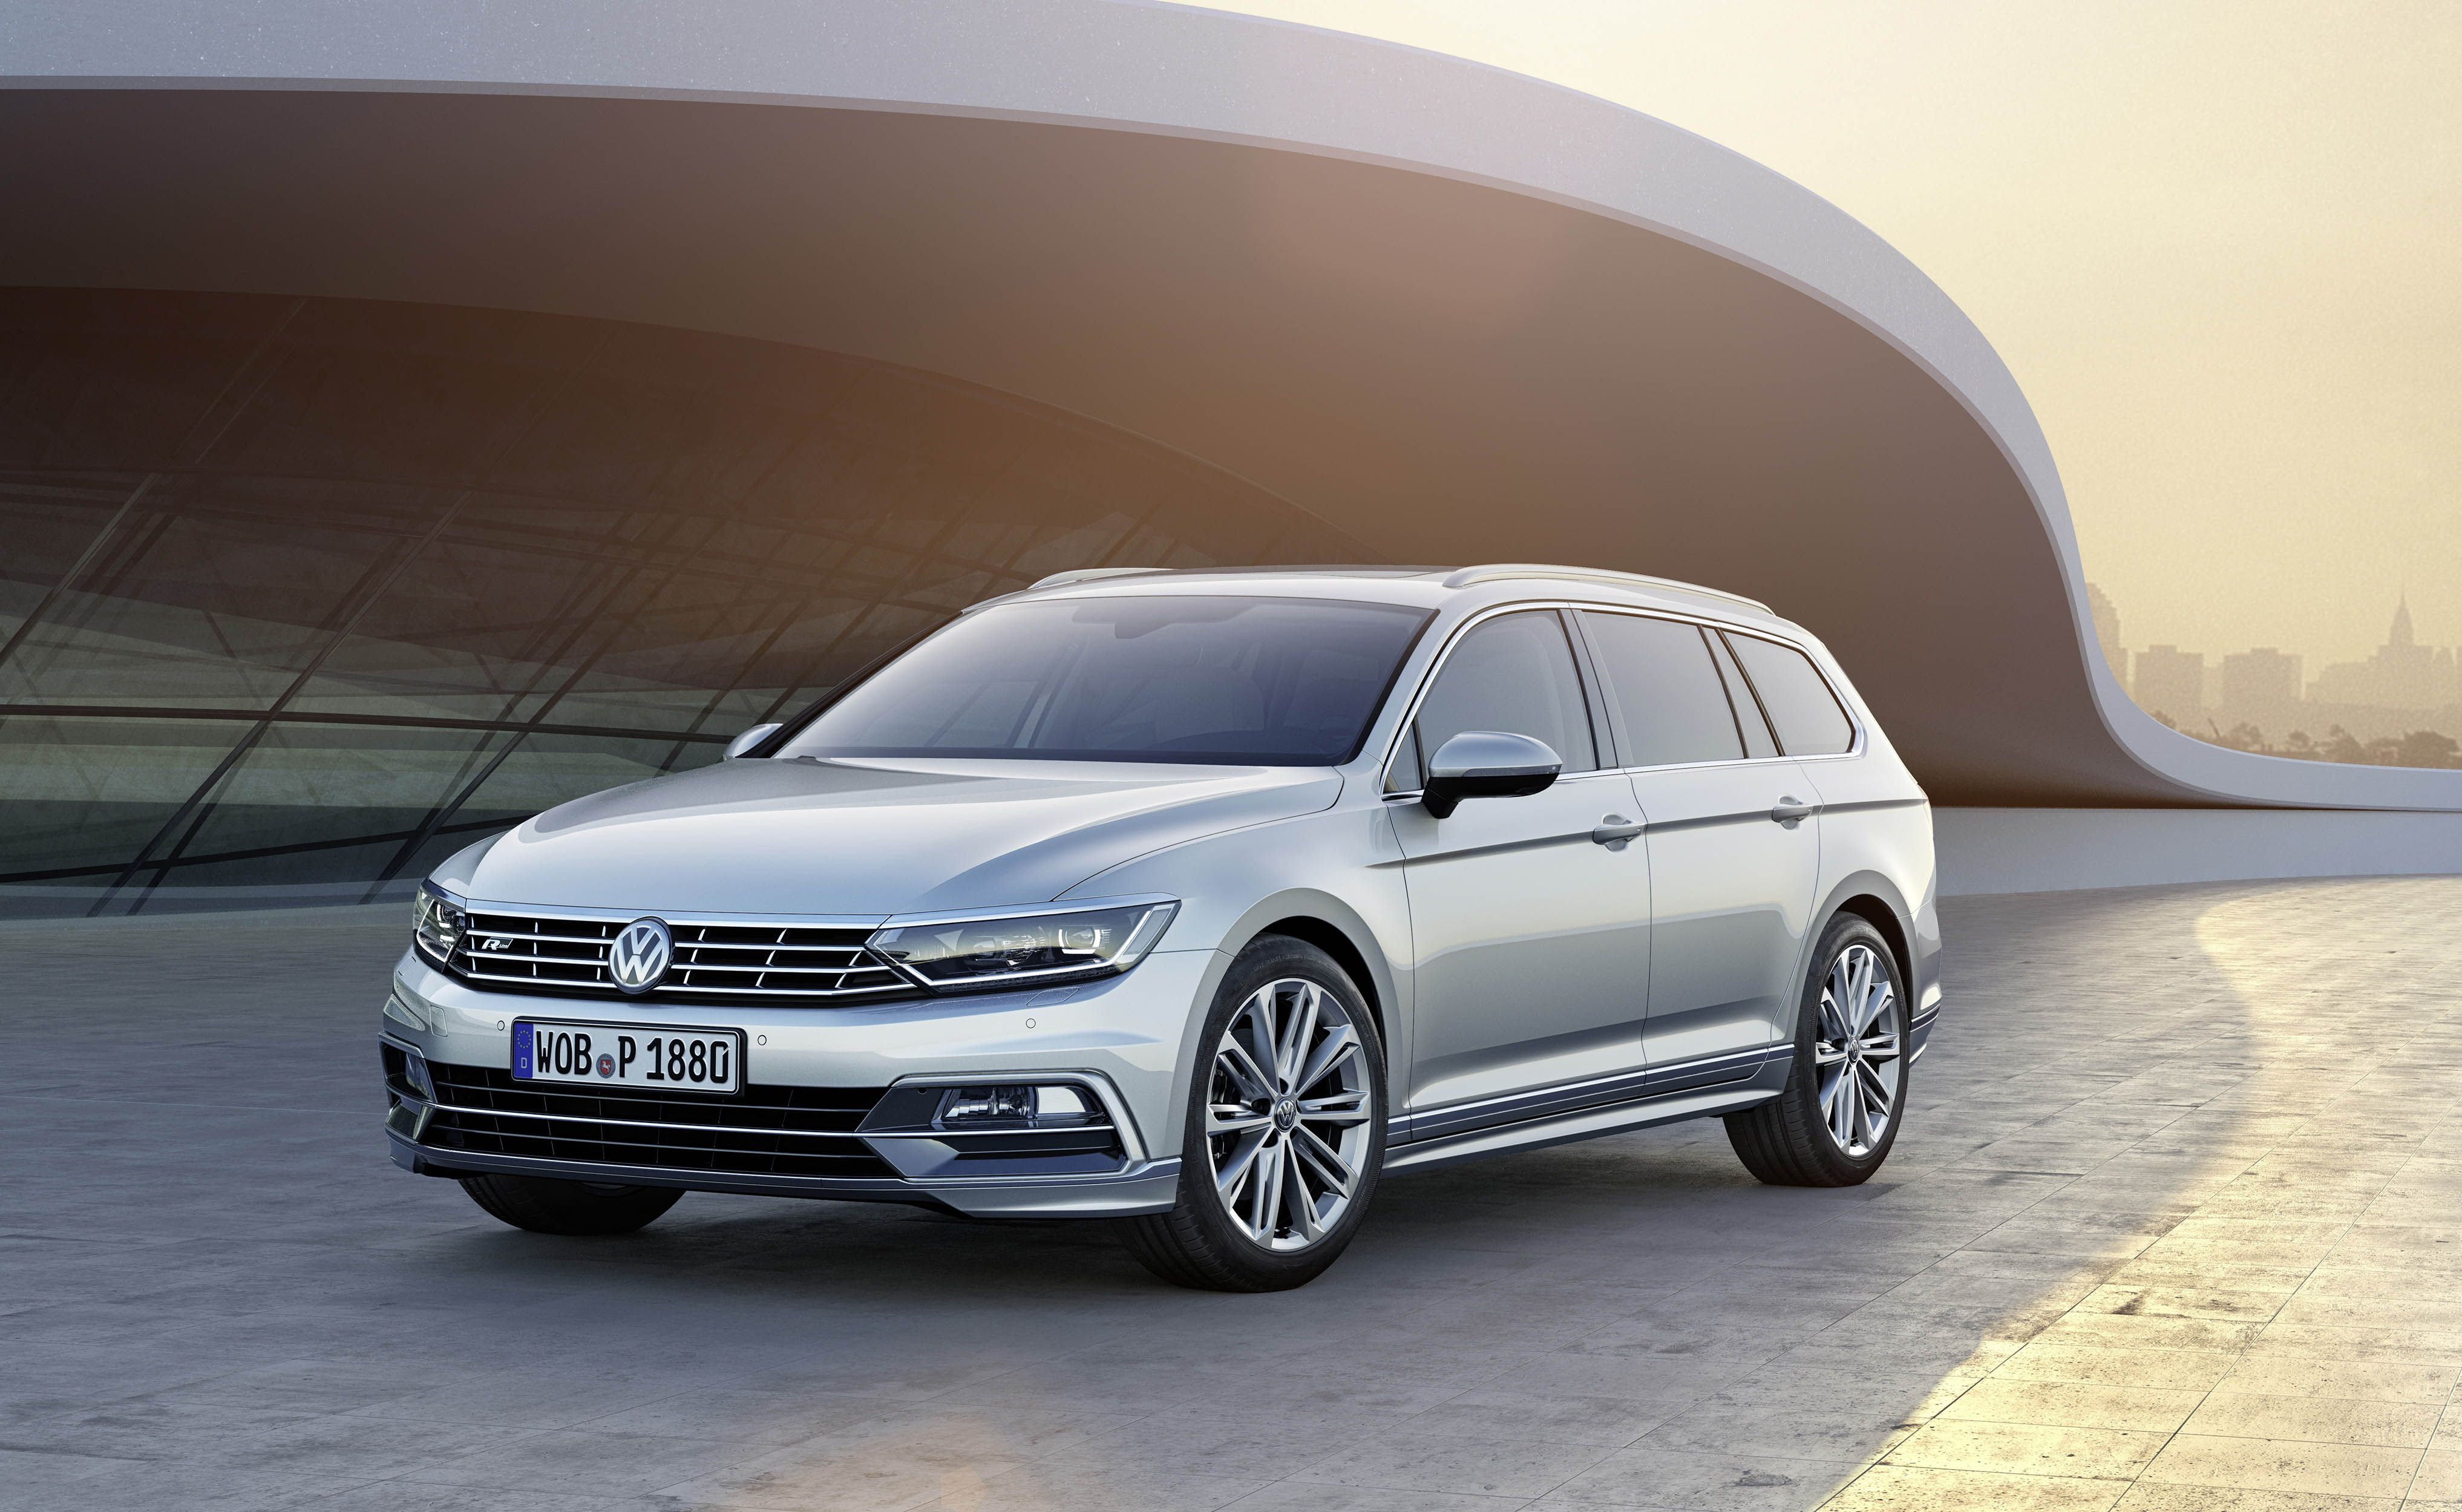 volkswagen new offers newcc and lease prices in ma cc vehicles best near boston passat